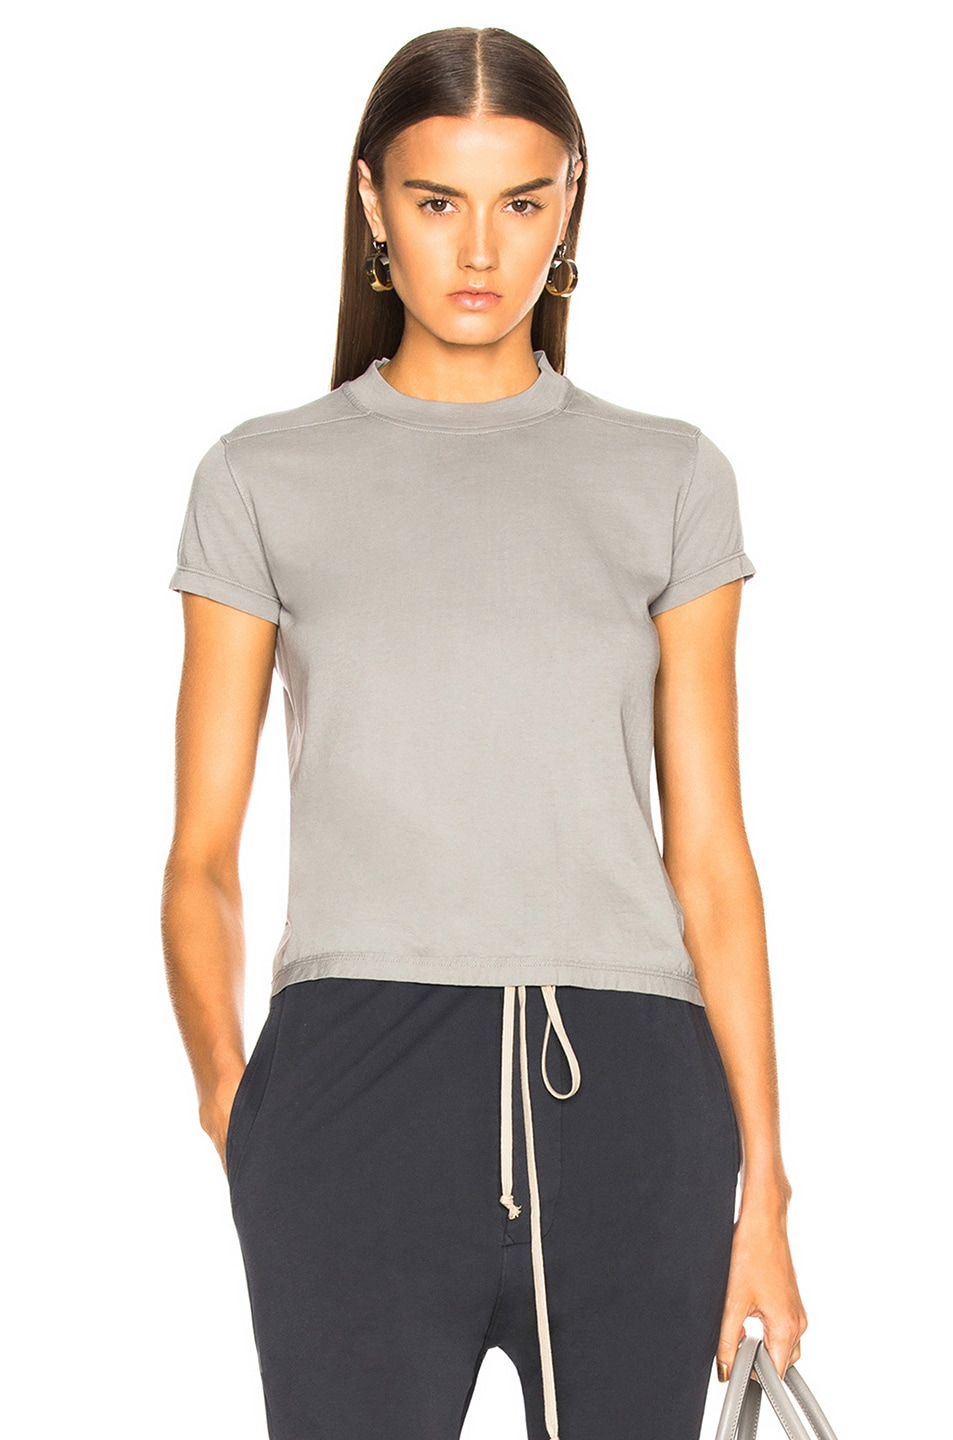 DRKSHDW by Rick Owens Small Level Tee in Gray